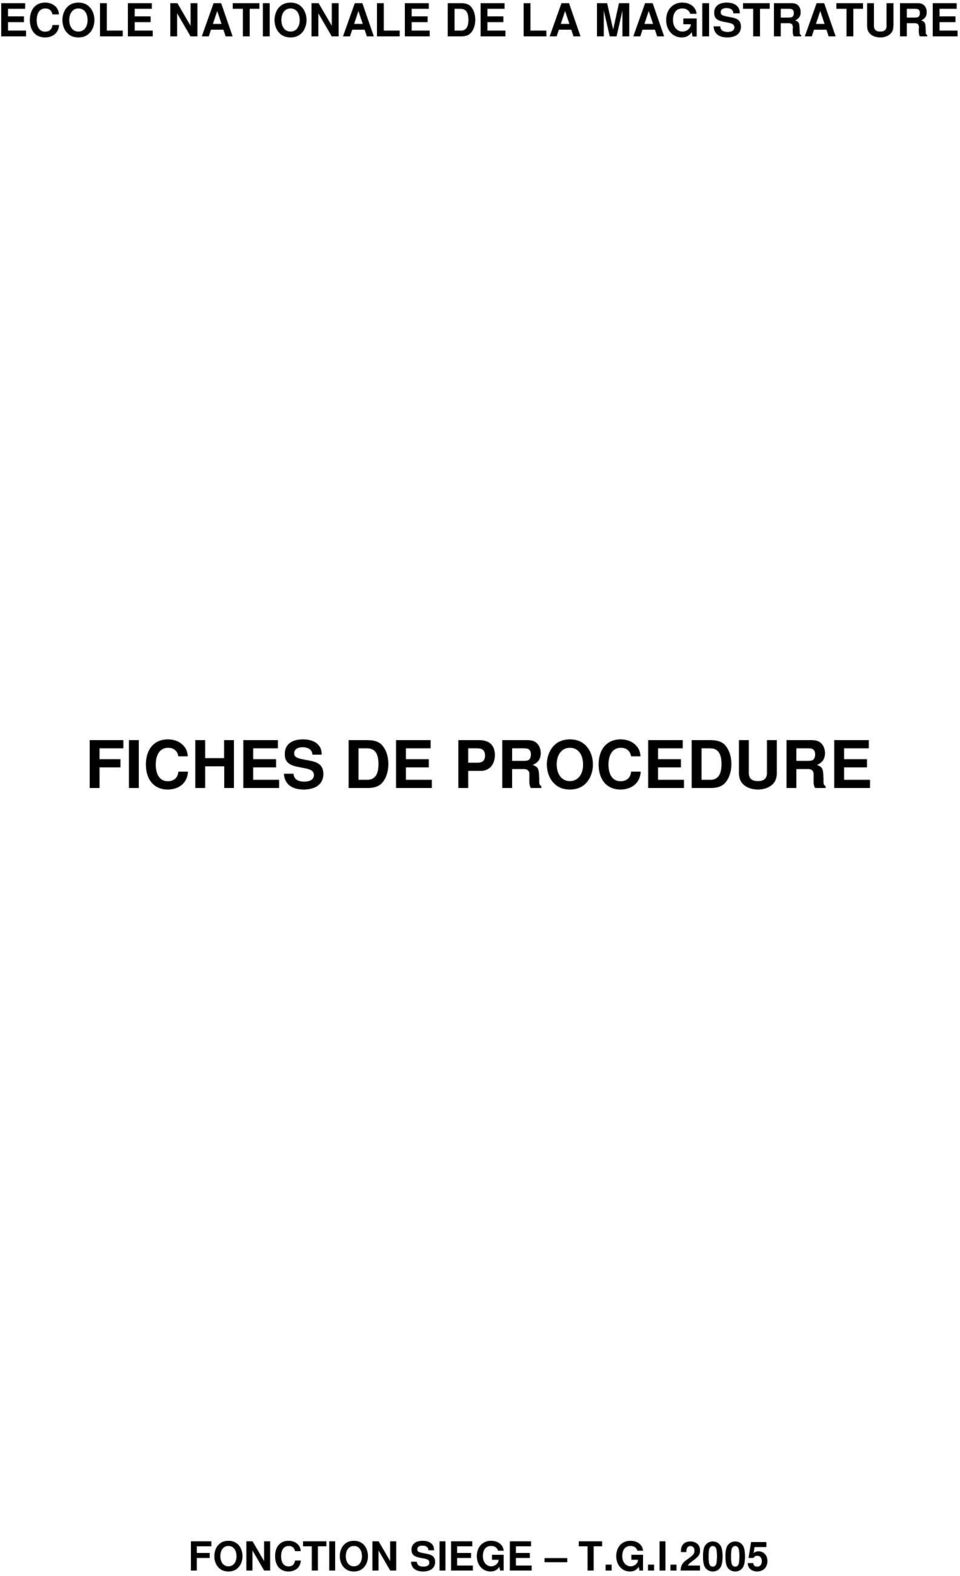 FICHES DE PROCEDURE